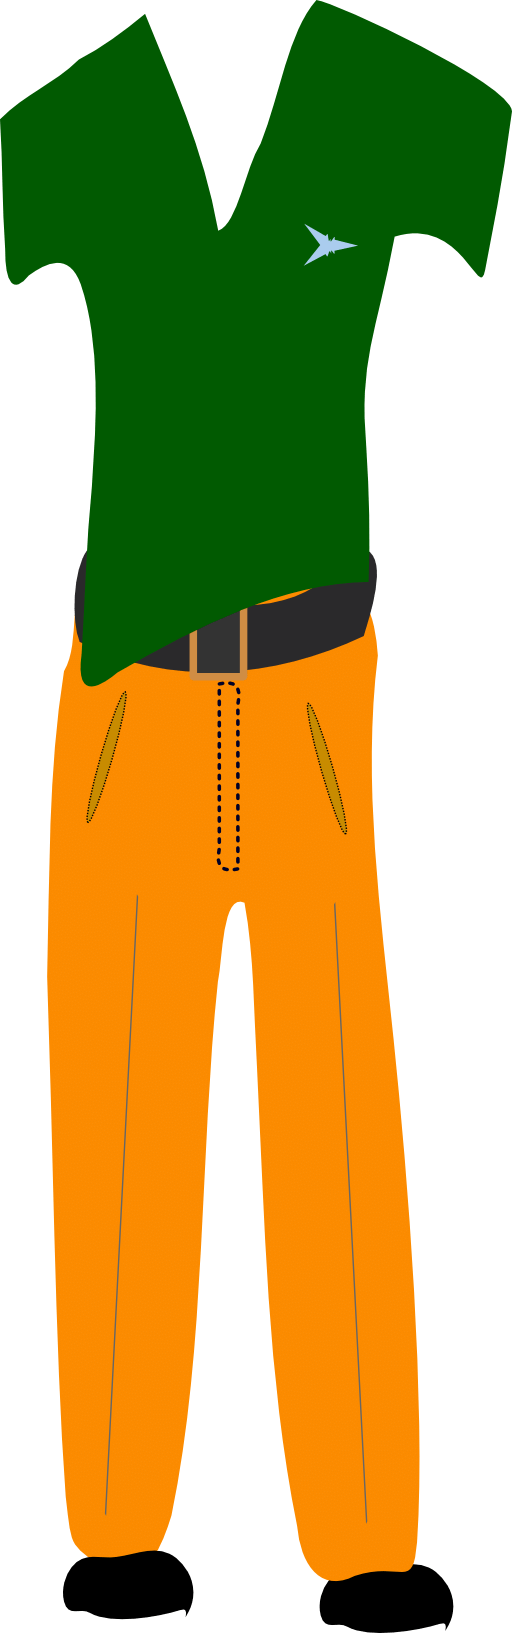 Elves clipart pants. Wear active cliparts many